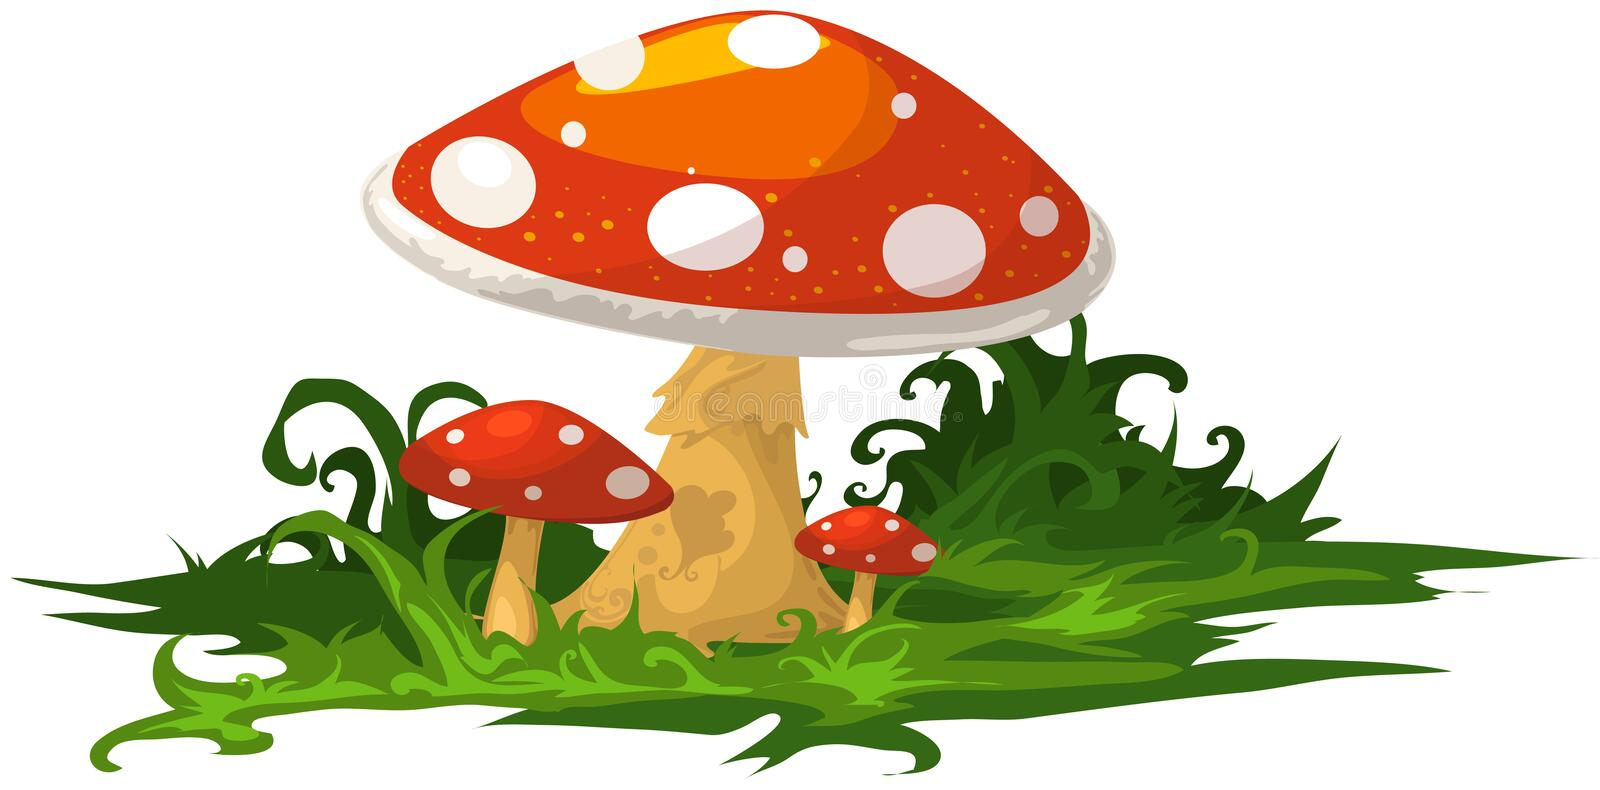 Mushroom stock illustration